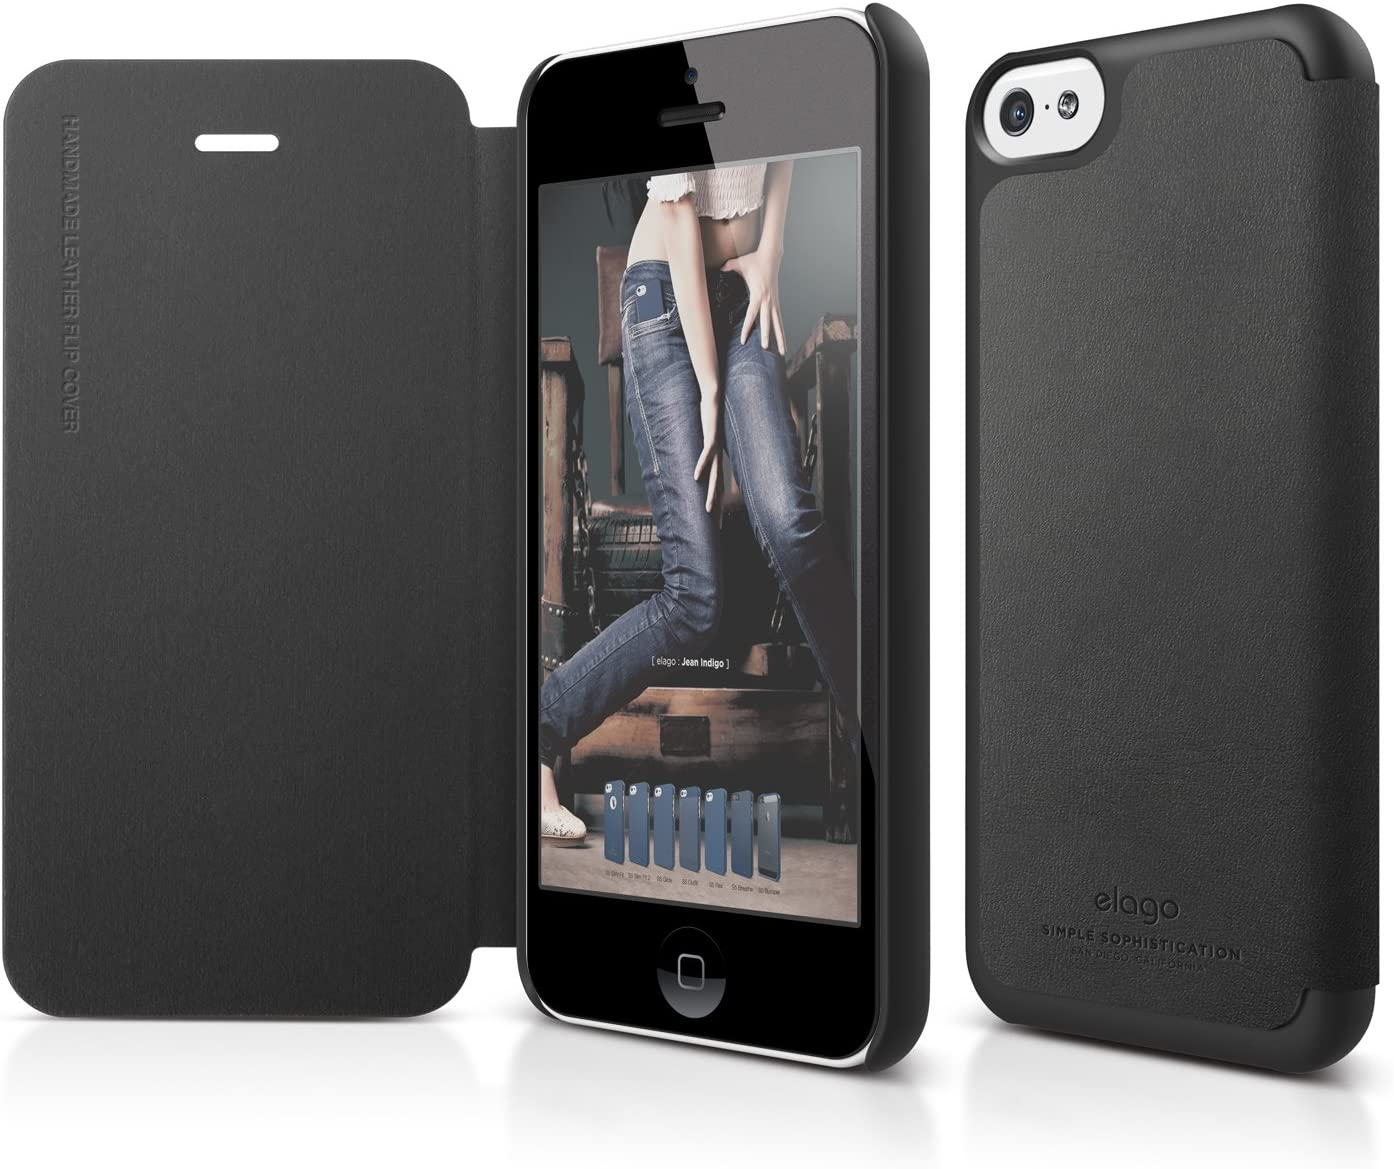 elago S5C Leather Case for iPhone 5C + HD Professional Extreme Clear film included - Full Retail Packaging (Black)